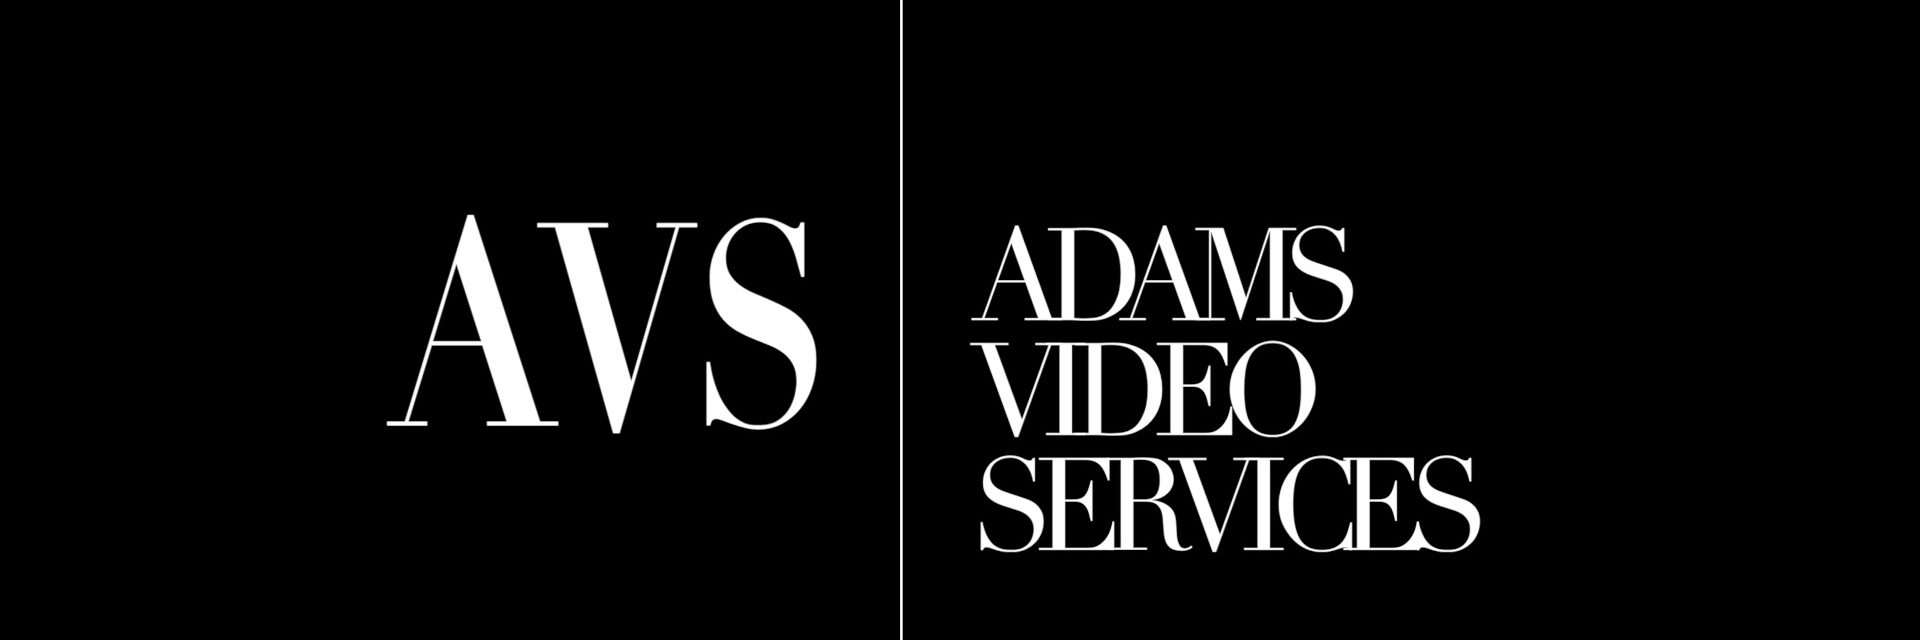 ADAMS VIDEO SERVICES, LLC